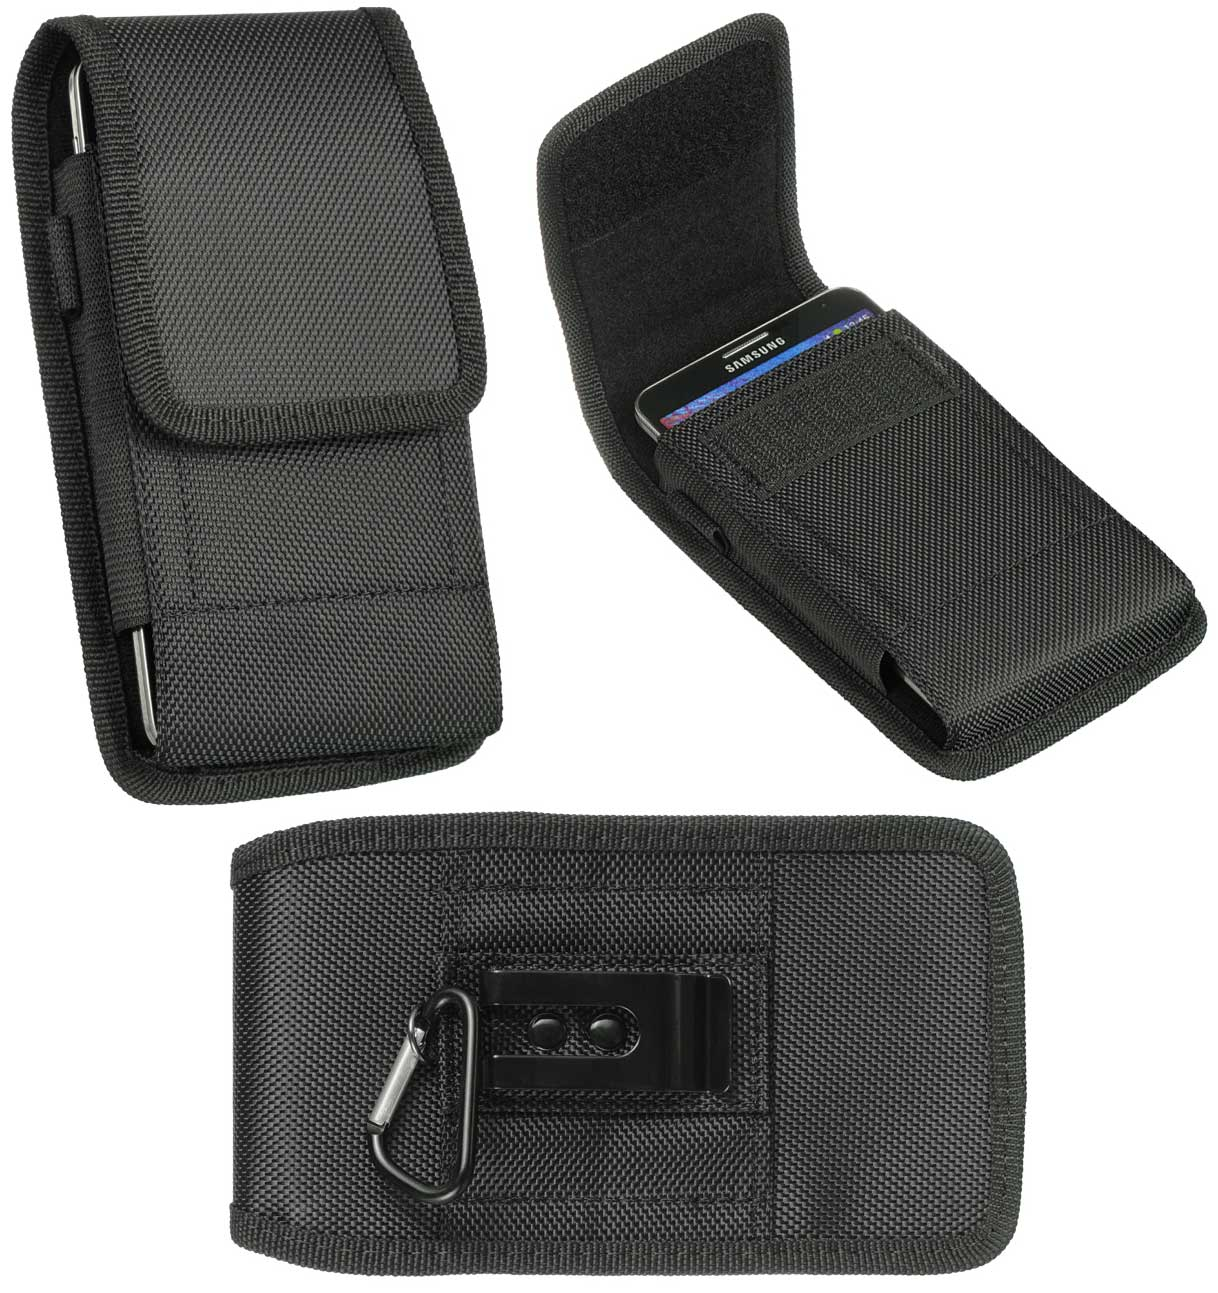 LG K40 Neoprene Nylon Case Pouch Clip Hook Black